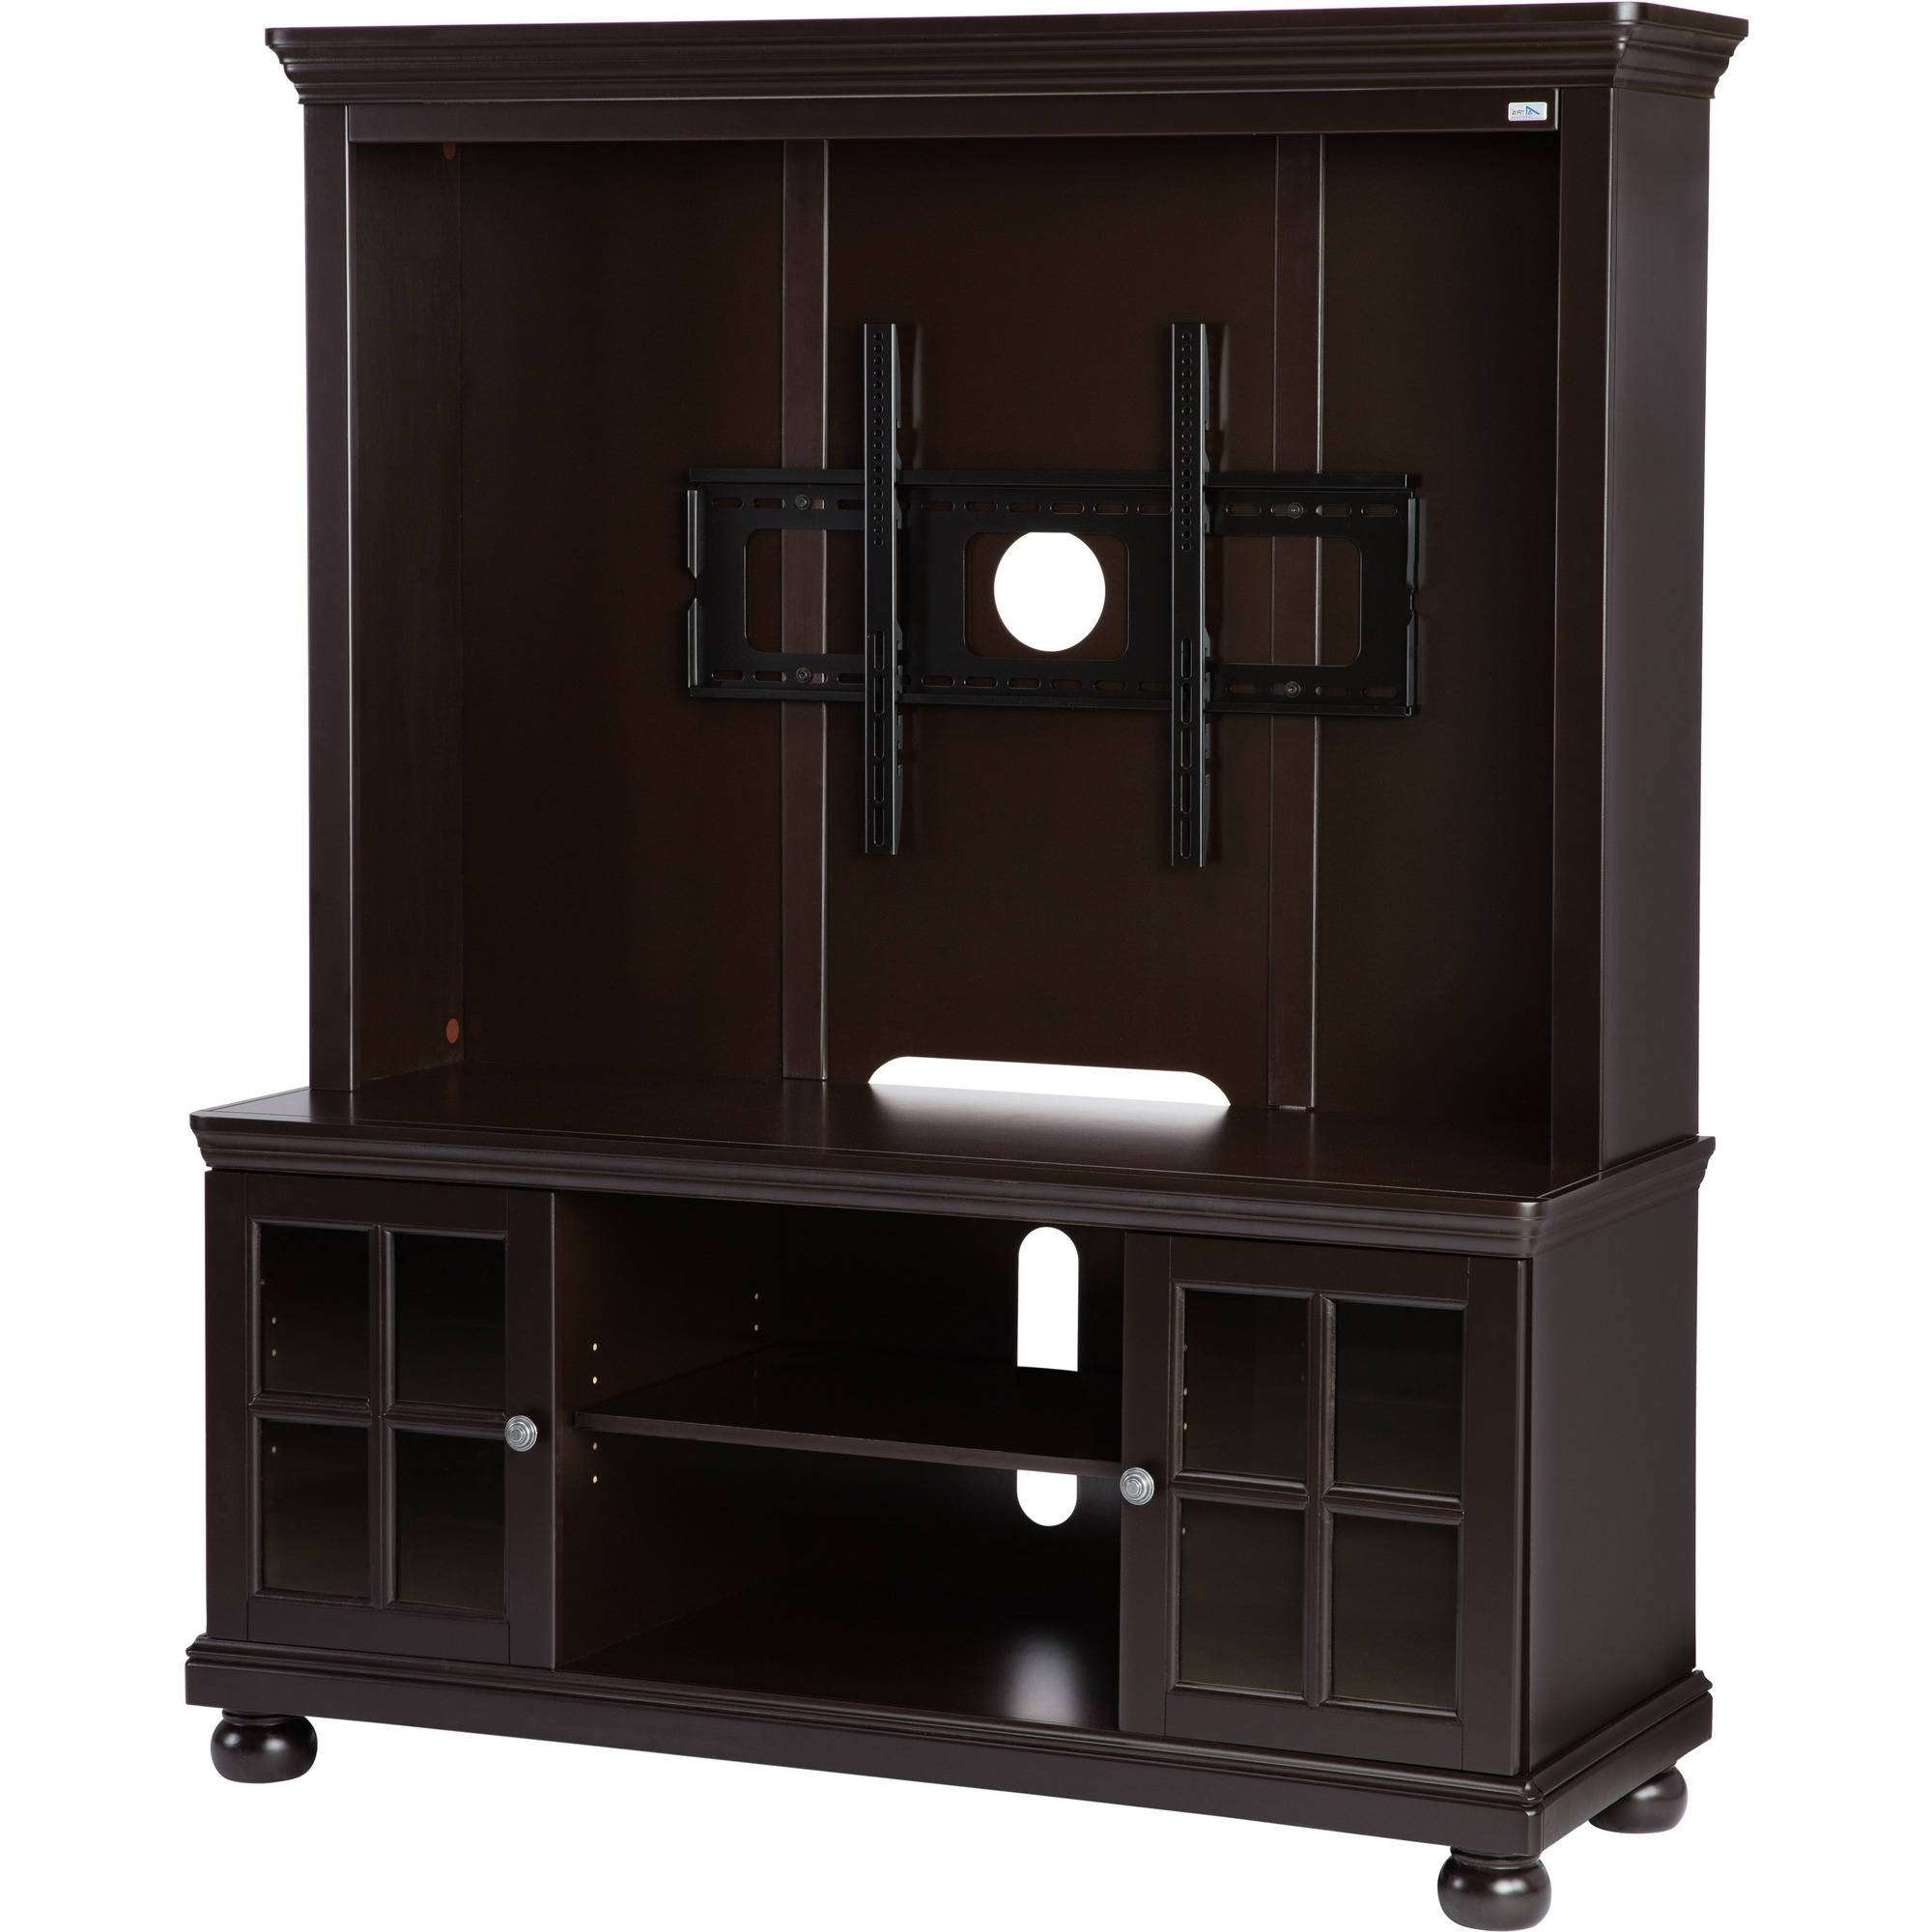 Amazing Expresso Tv Stand 57 For Small Home Remodel Ideas With In Expresso Tv Stands (View 1 of 15)